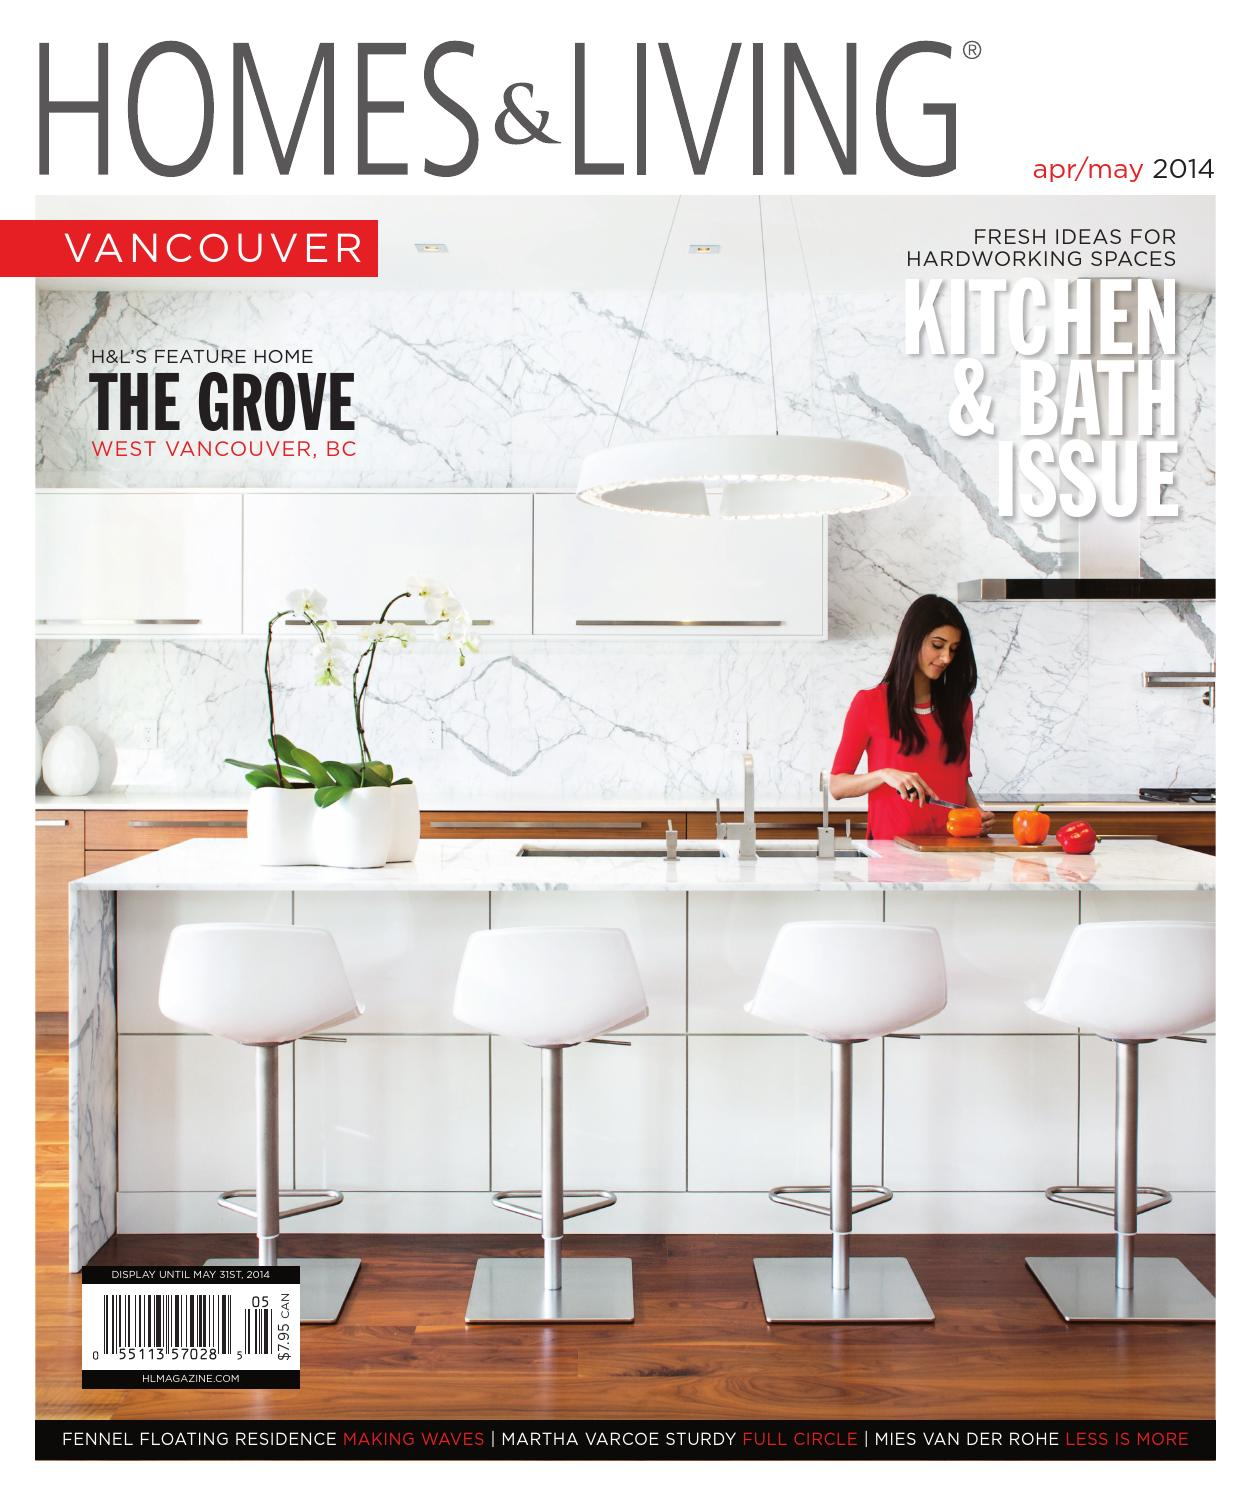 homes living magazine vancouver april may 2014 teaser by homes living magazine issuu. Black Bedroom Furniture Sets. Home Design Ideas